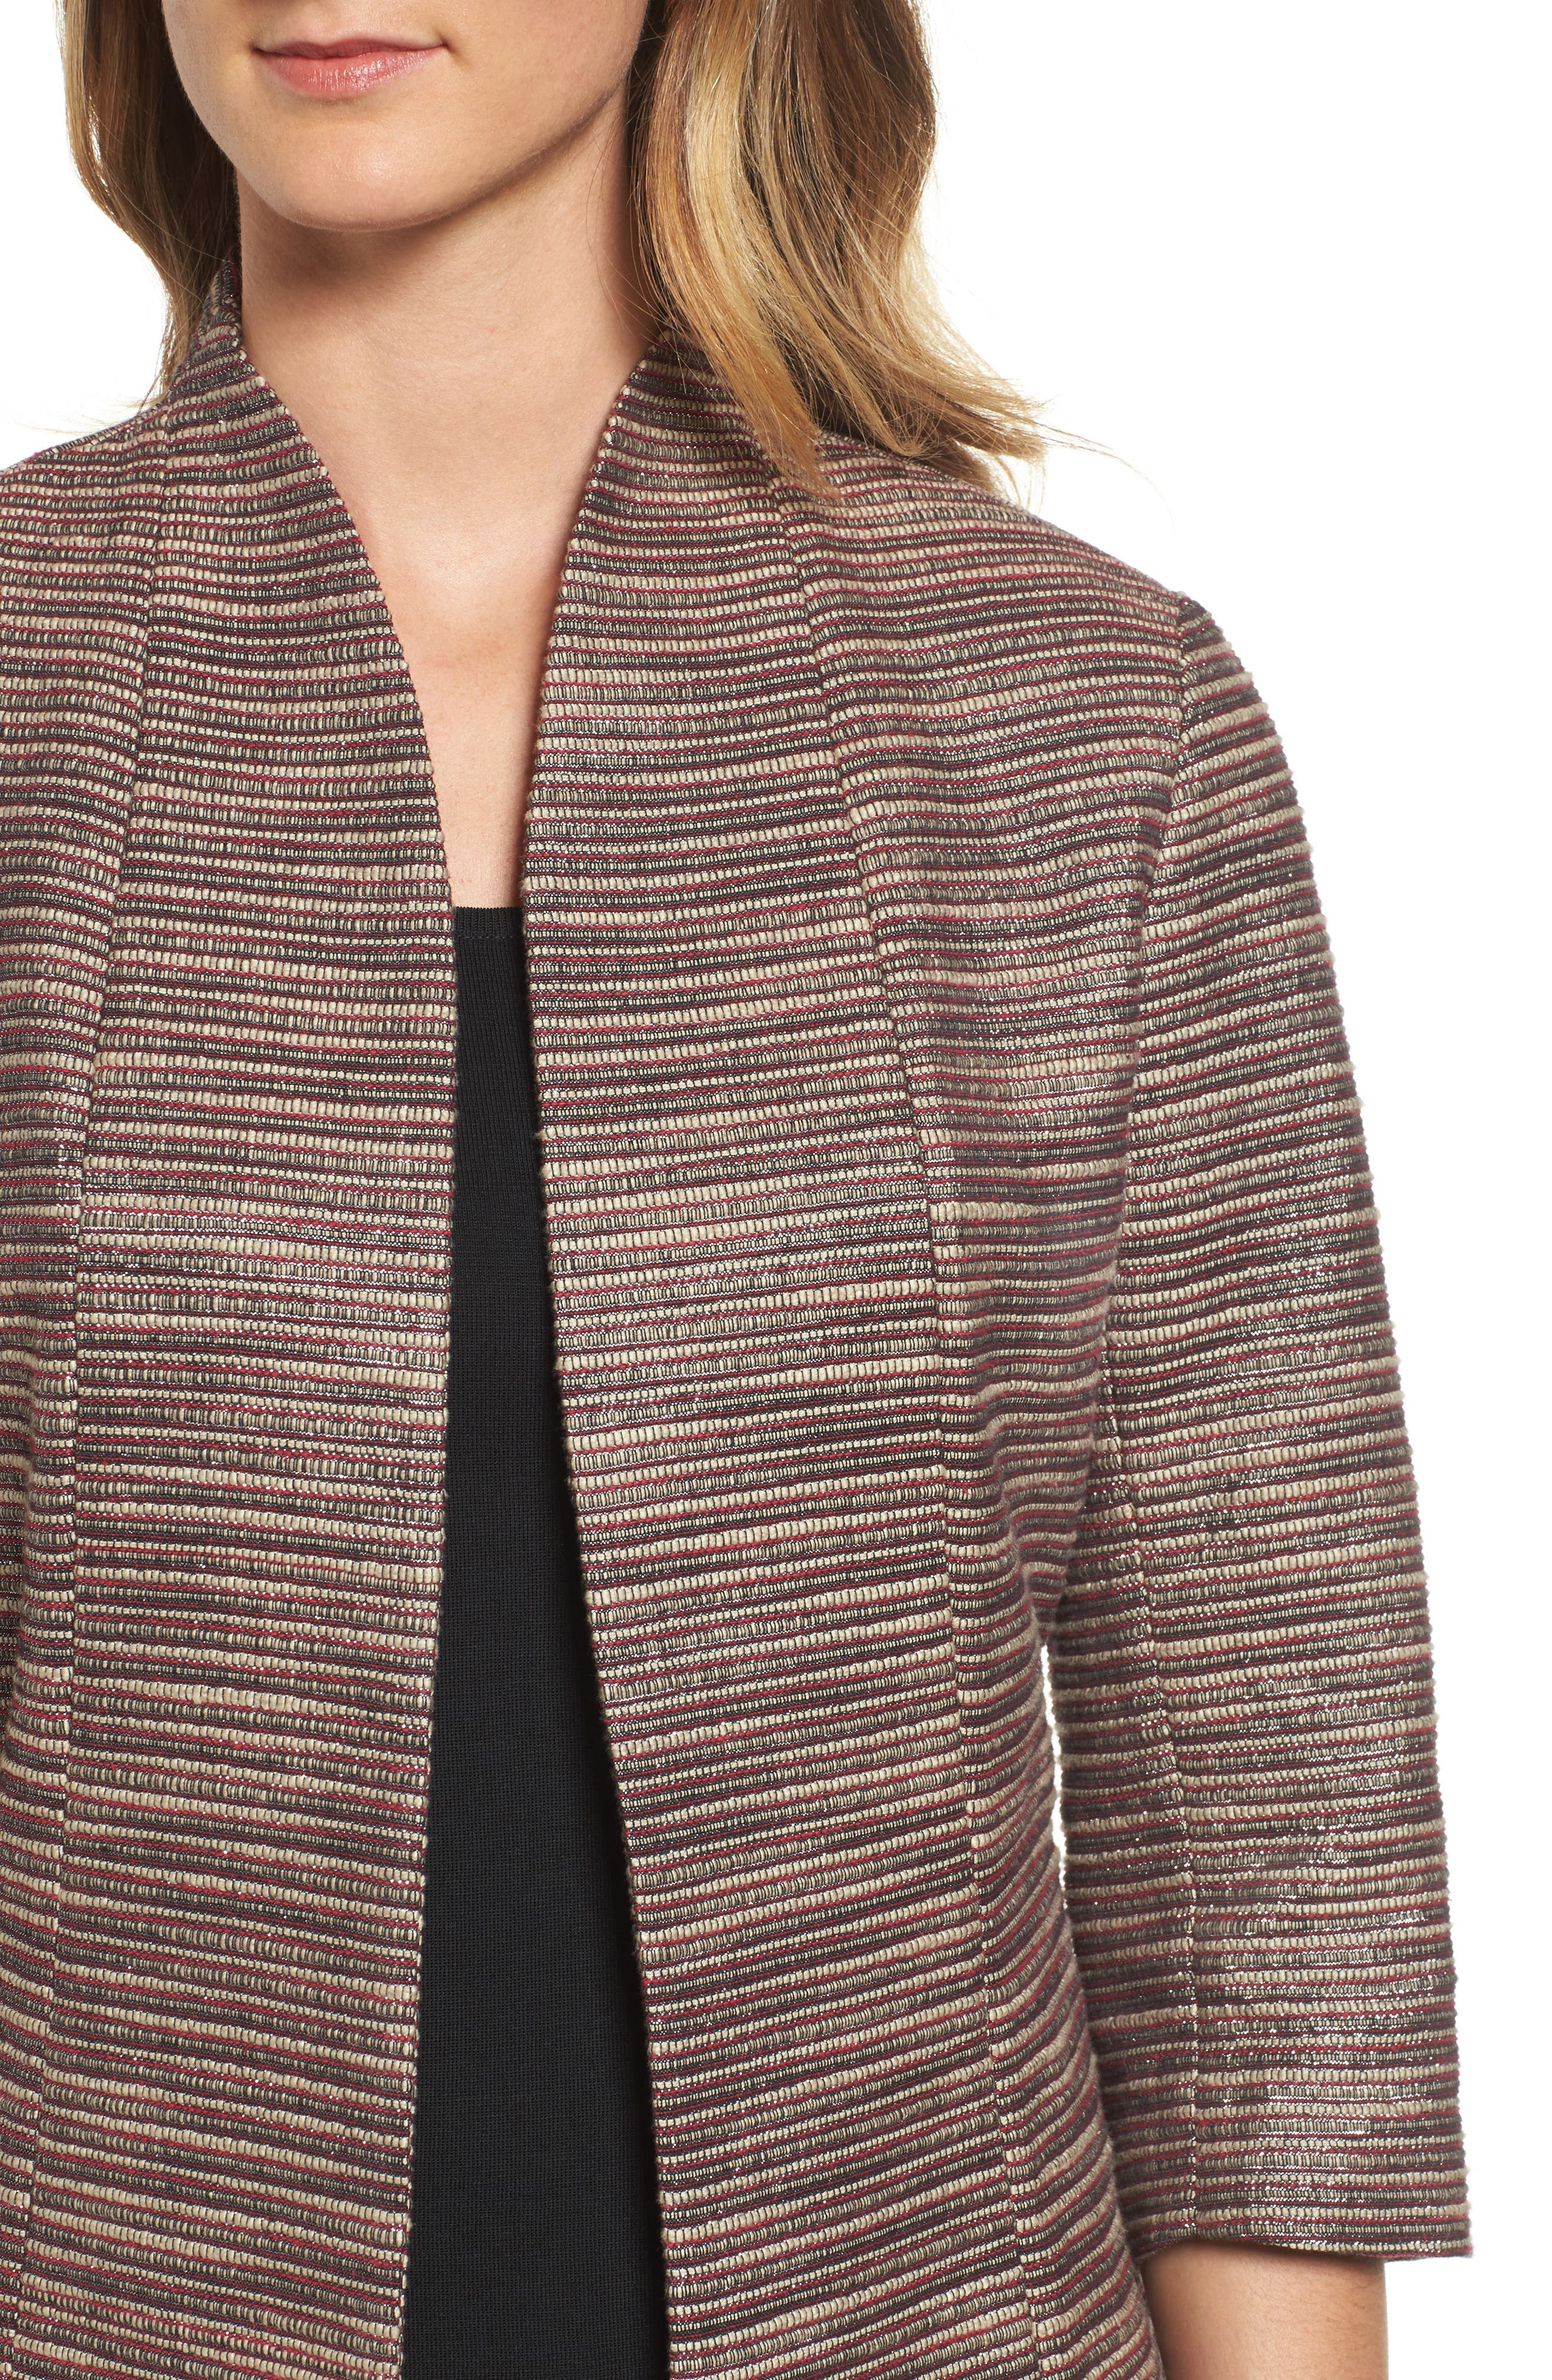 Ribbed Metallic Tweed Jacket,                             Alternate thumbnail 4, color,                             657